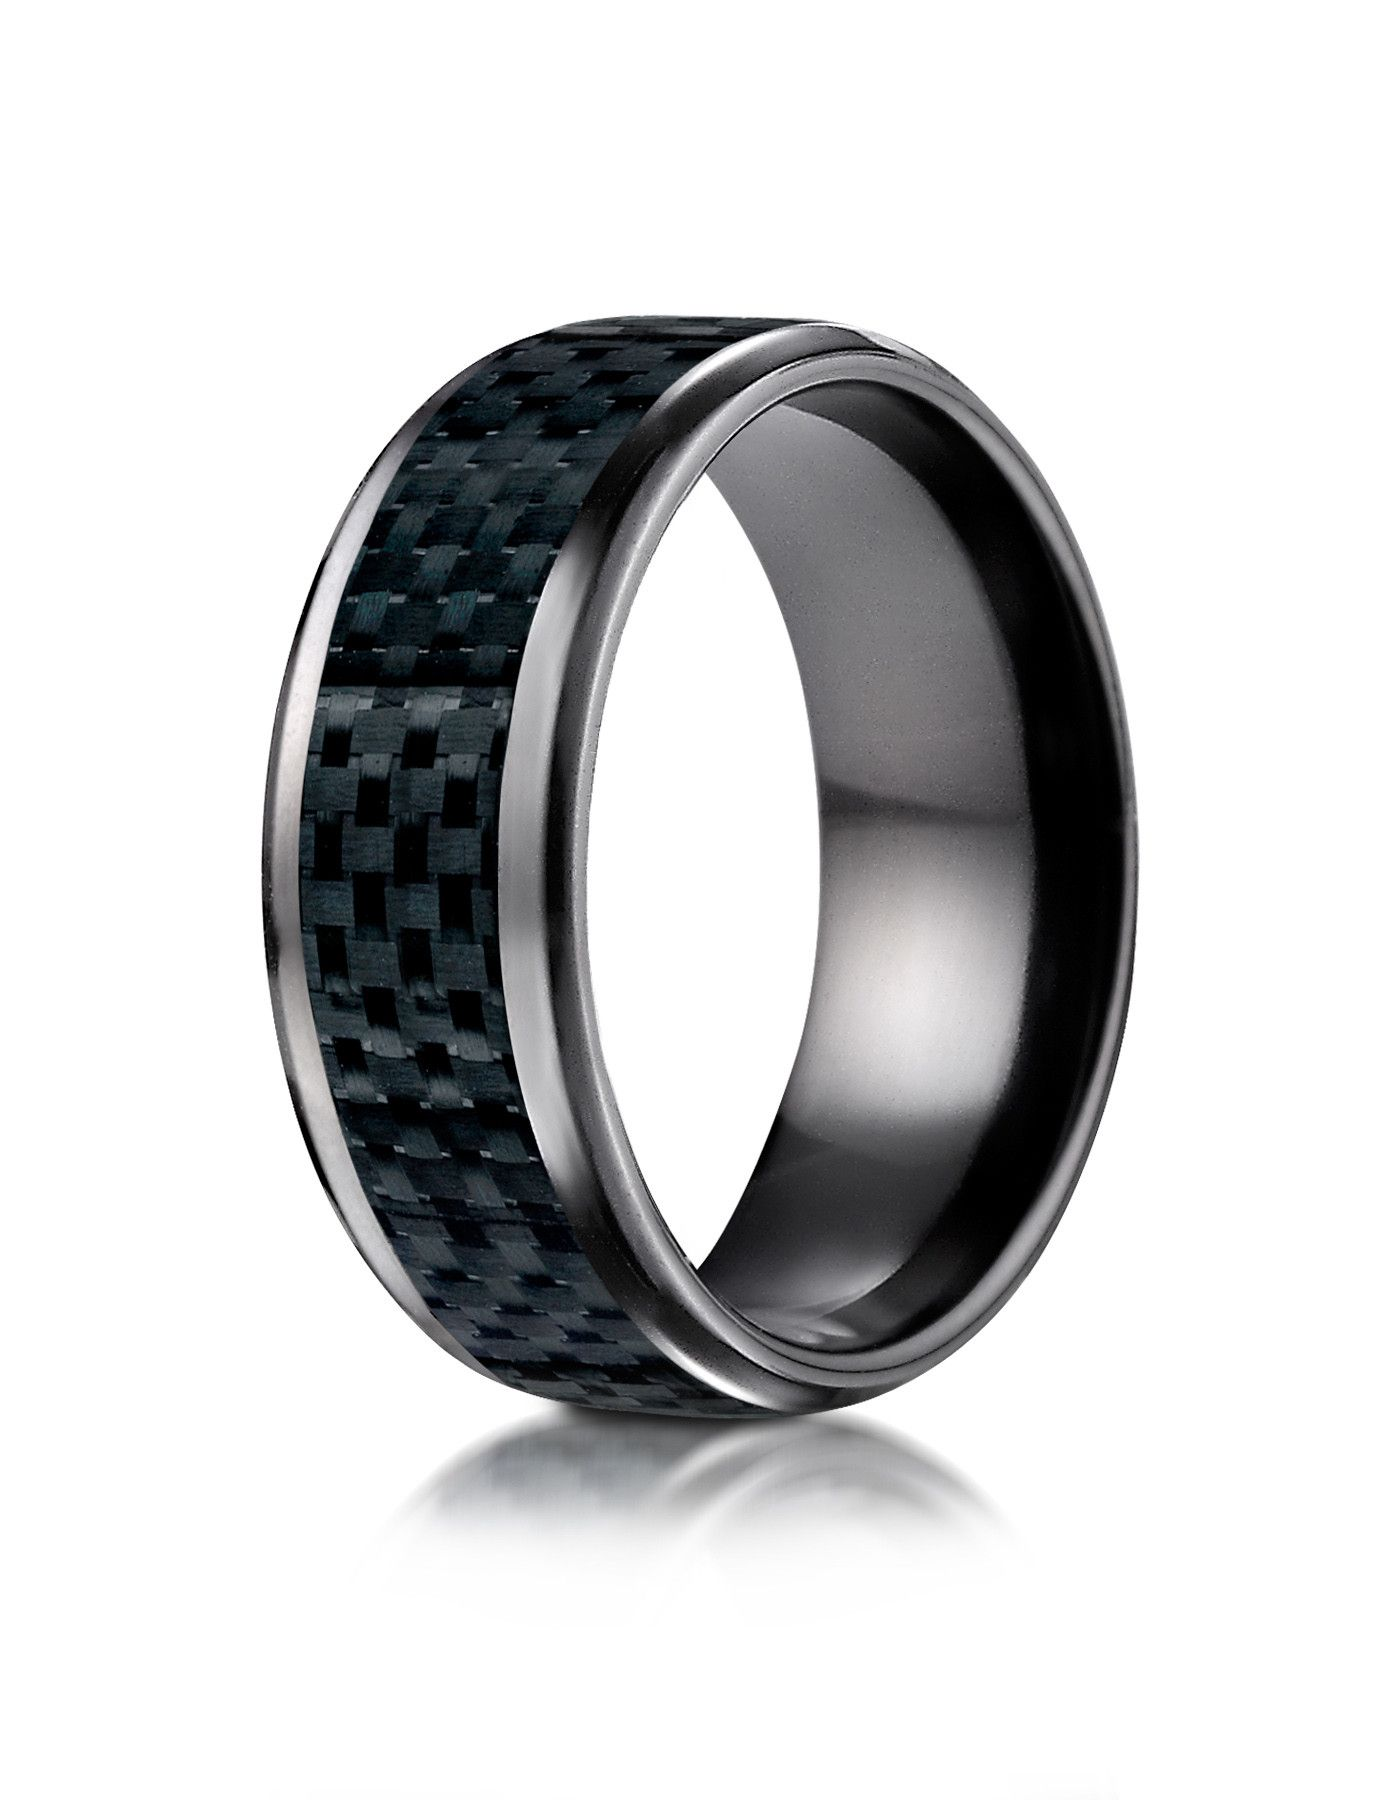 Belem Black Anium Carbon Fiber Inlay Wedding Band For Men